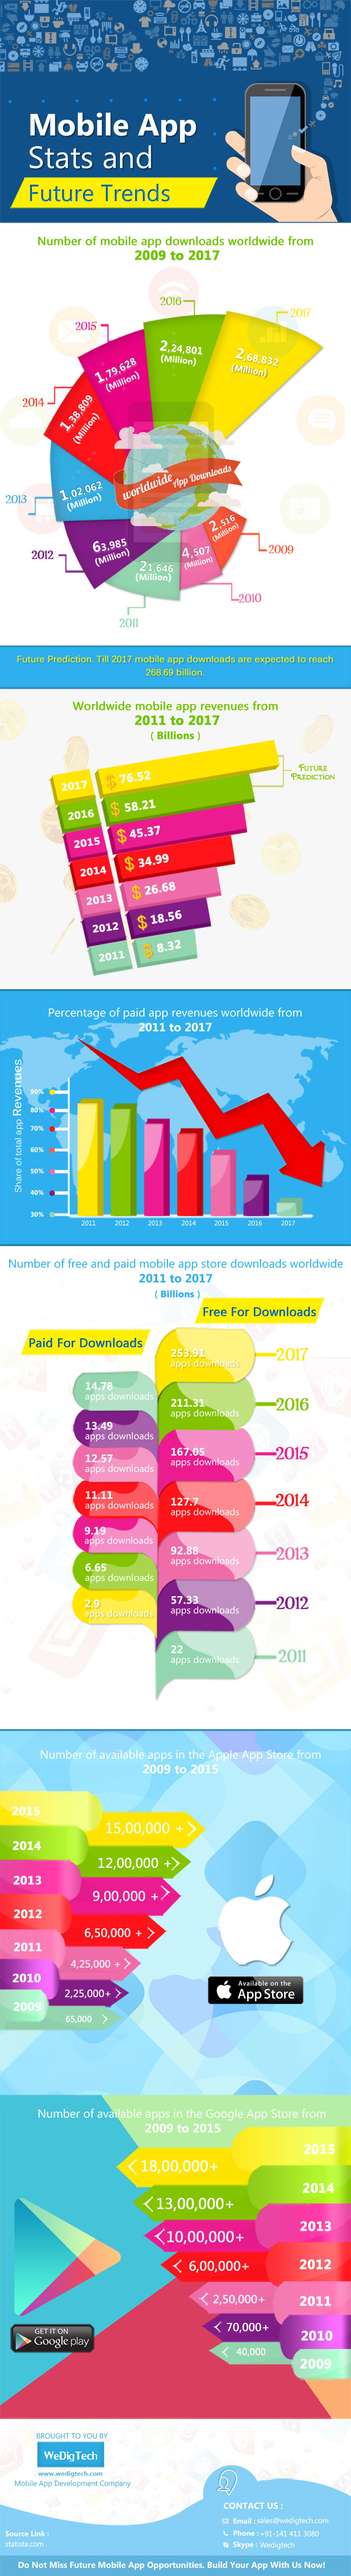 Mobile Apps Statistics and Trends 2009 to 2017